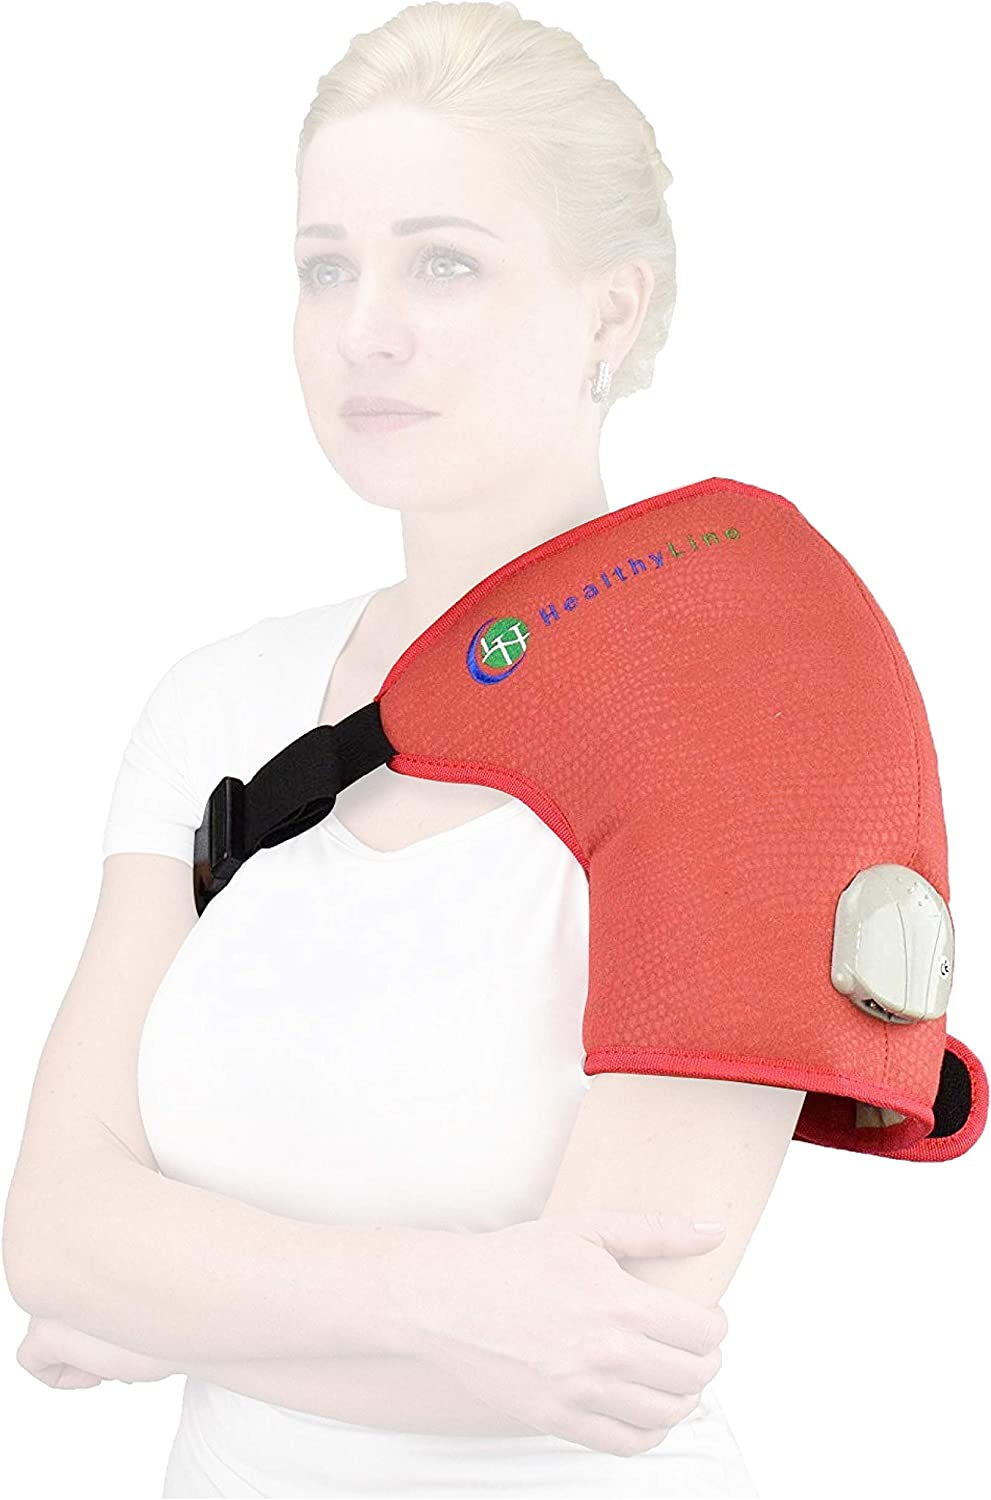 """HealthyLine Far Infrared Shoulder Heating Pad - Inframat Pro - Hot Amethyst Gemstone Pain Relief Therapy - 20"""" x 12"""""""